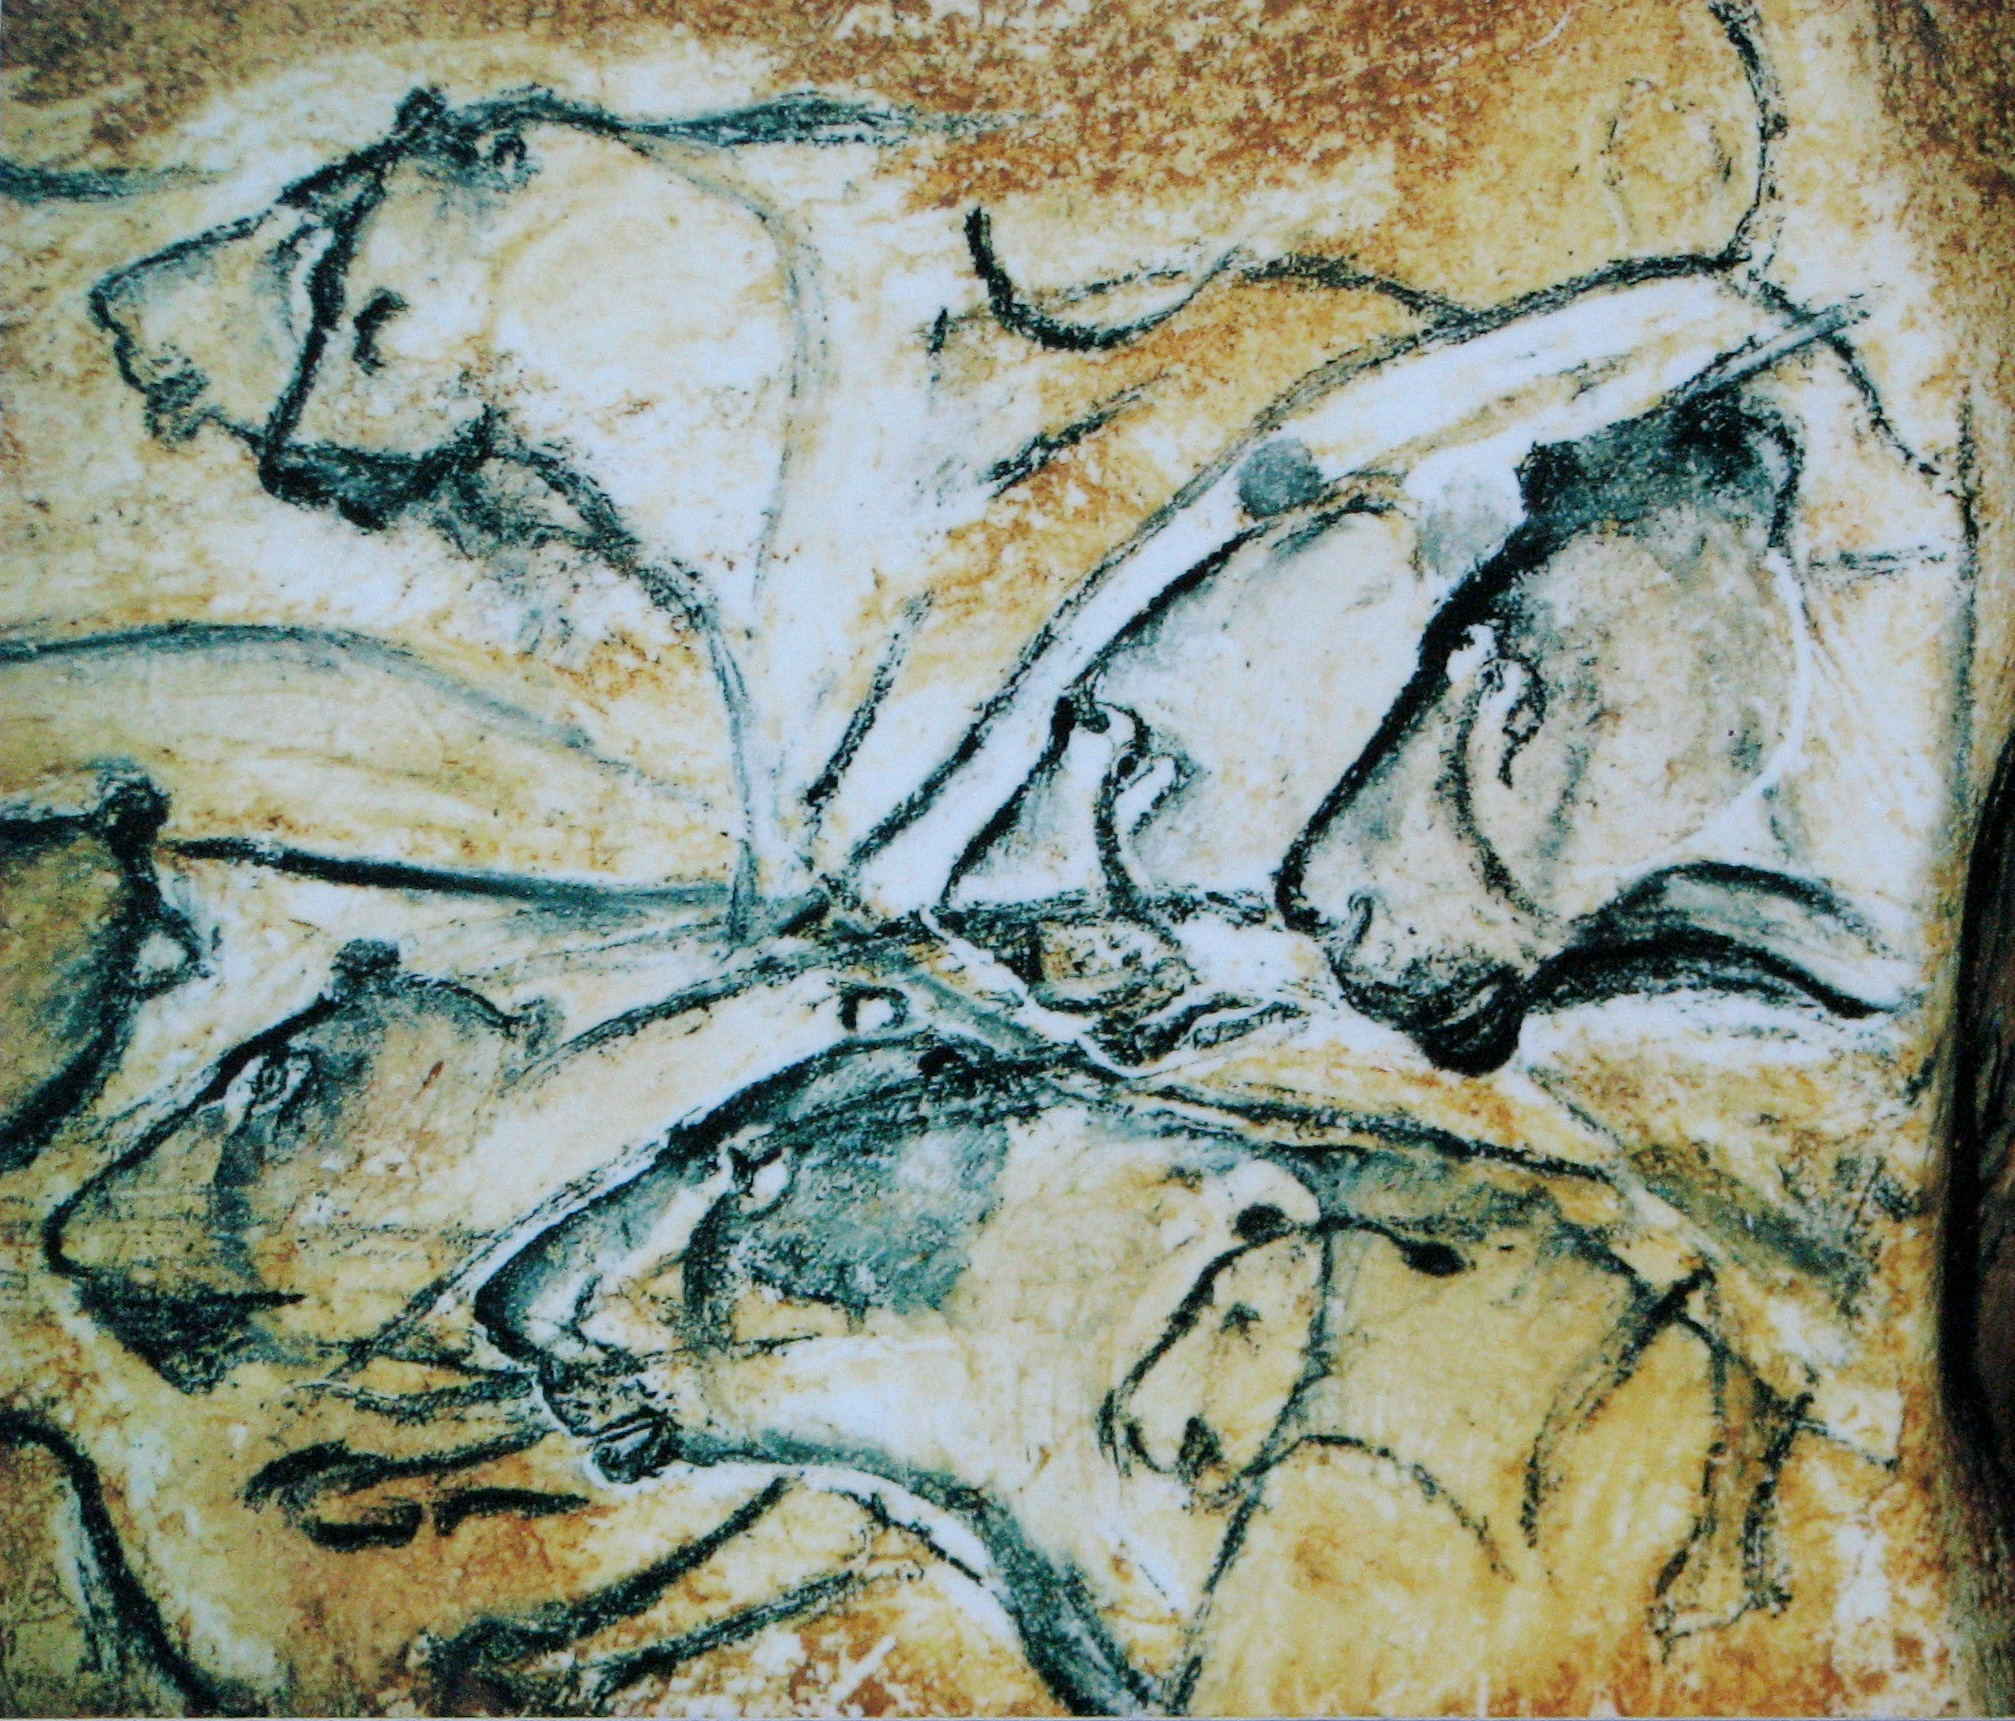 Cave Painting of Lions - Chauvet